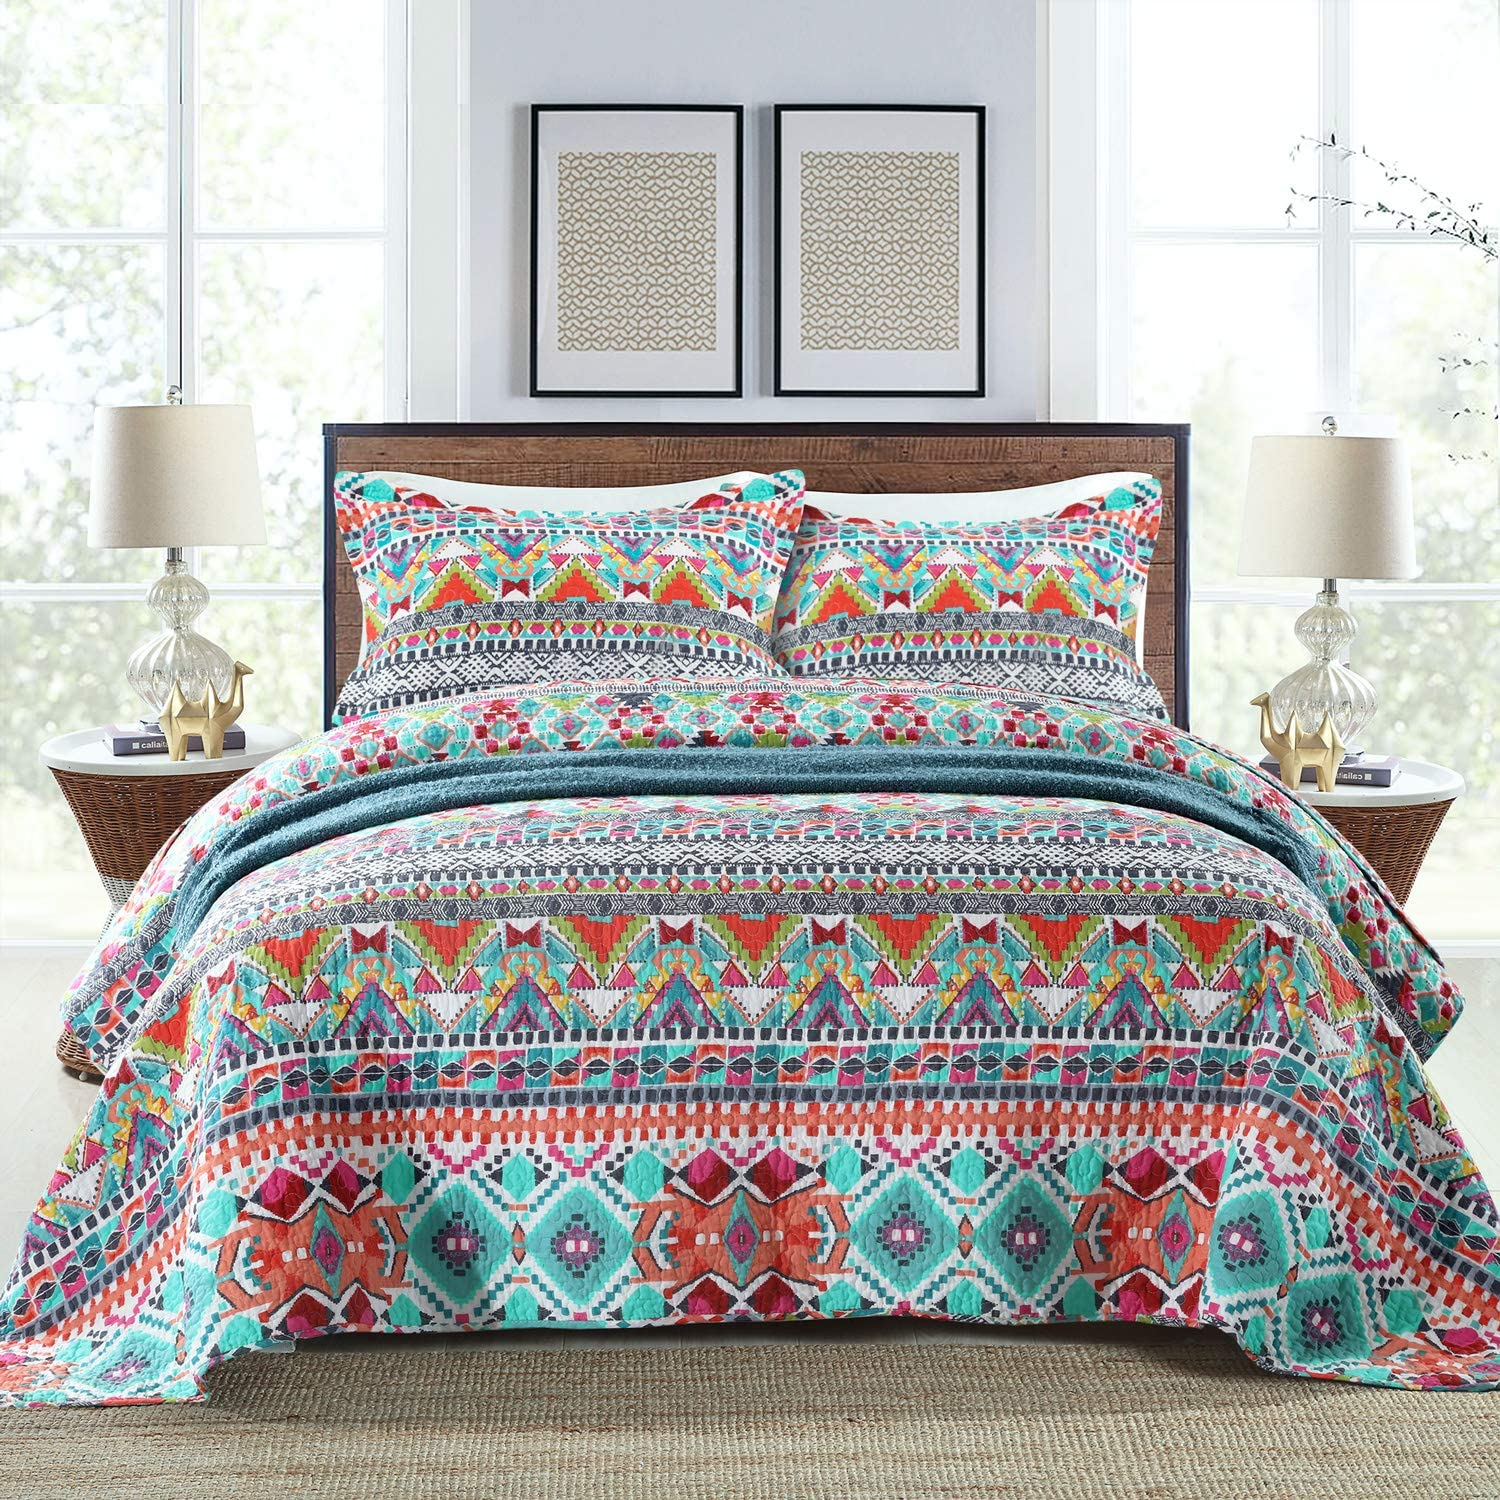 NEWLAKE Cotton Bedspread Quilt Patchwork Coverle Sets-Reversible Max 86% OFF Ranking TOP4